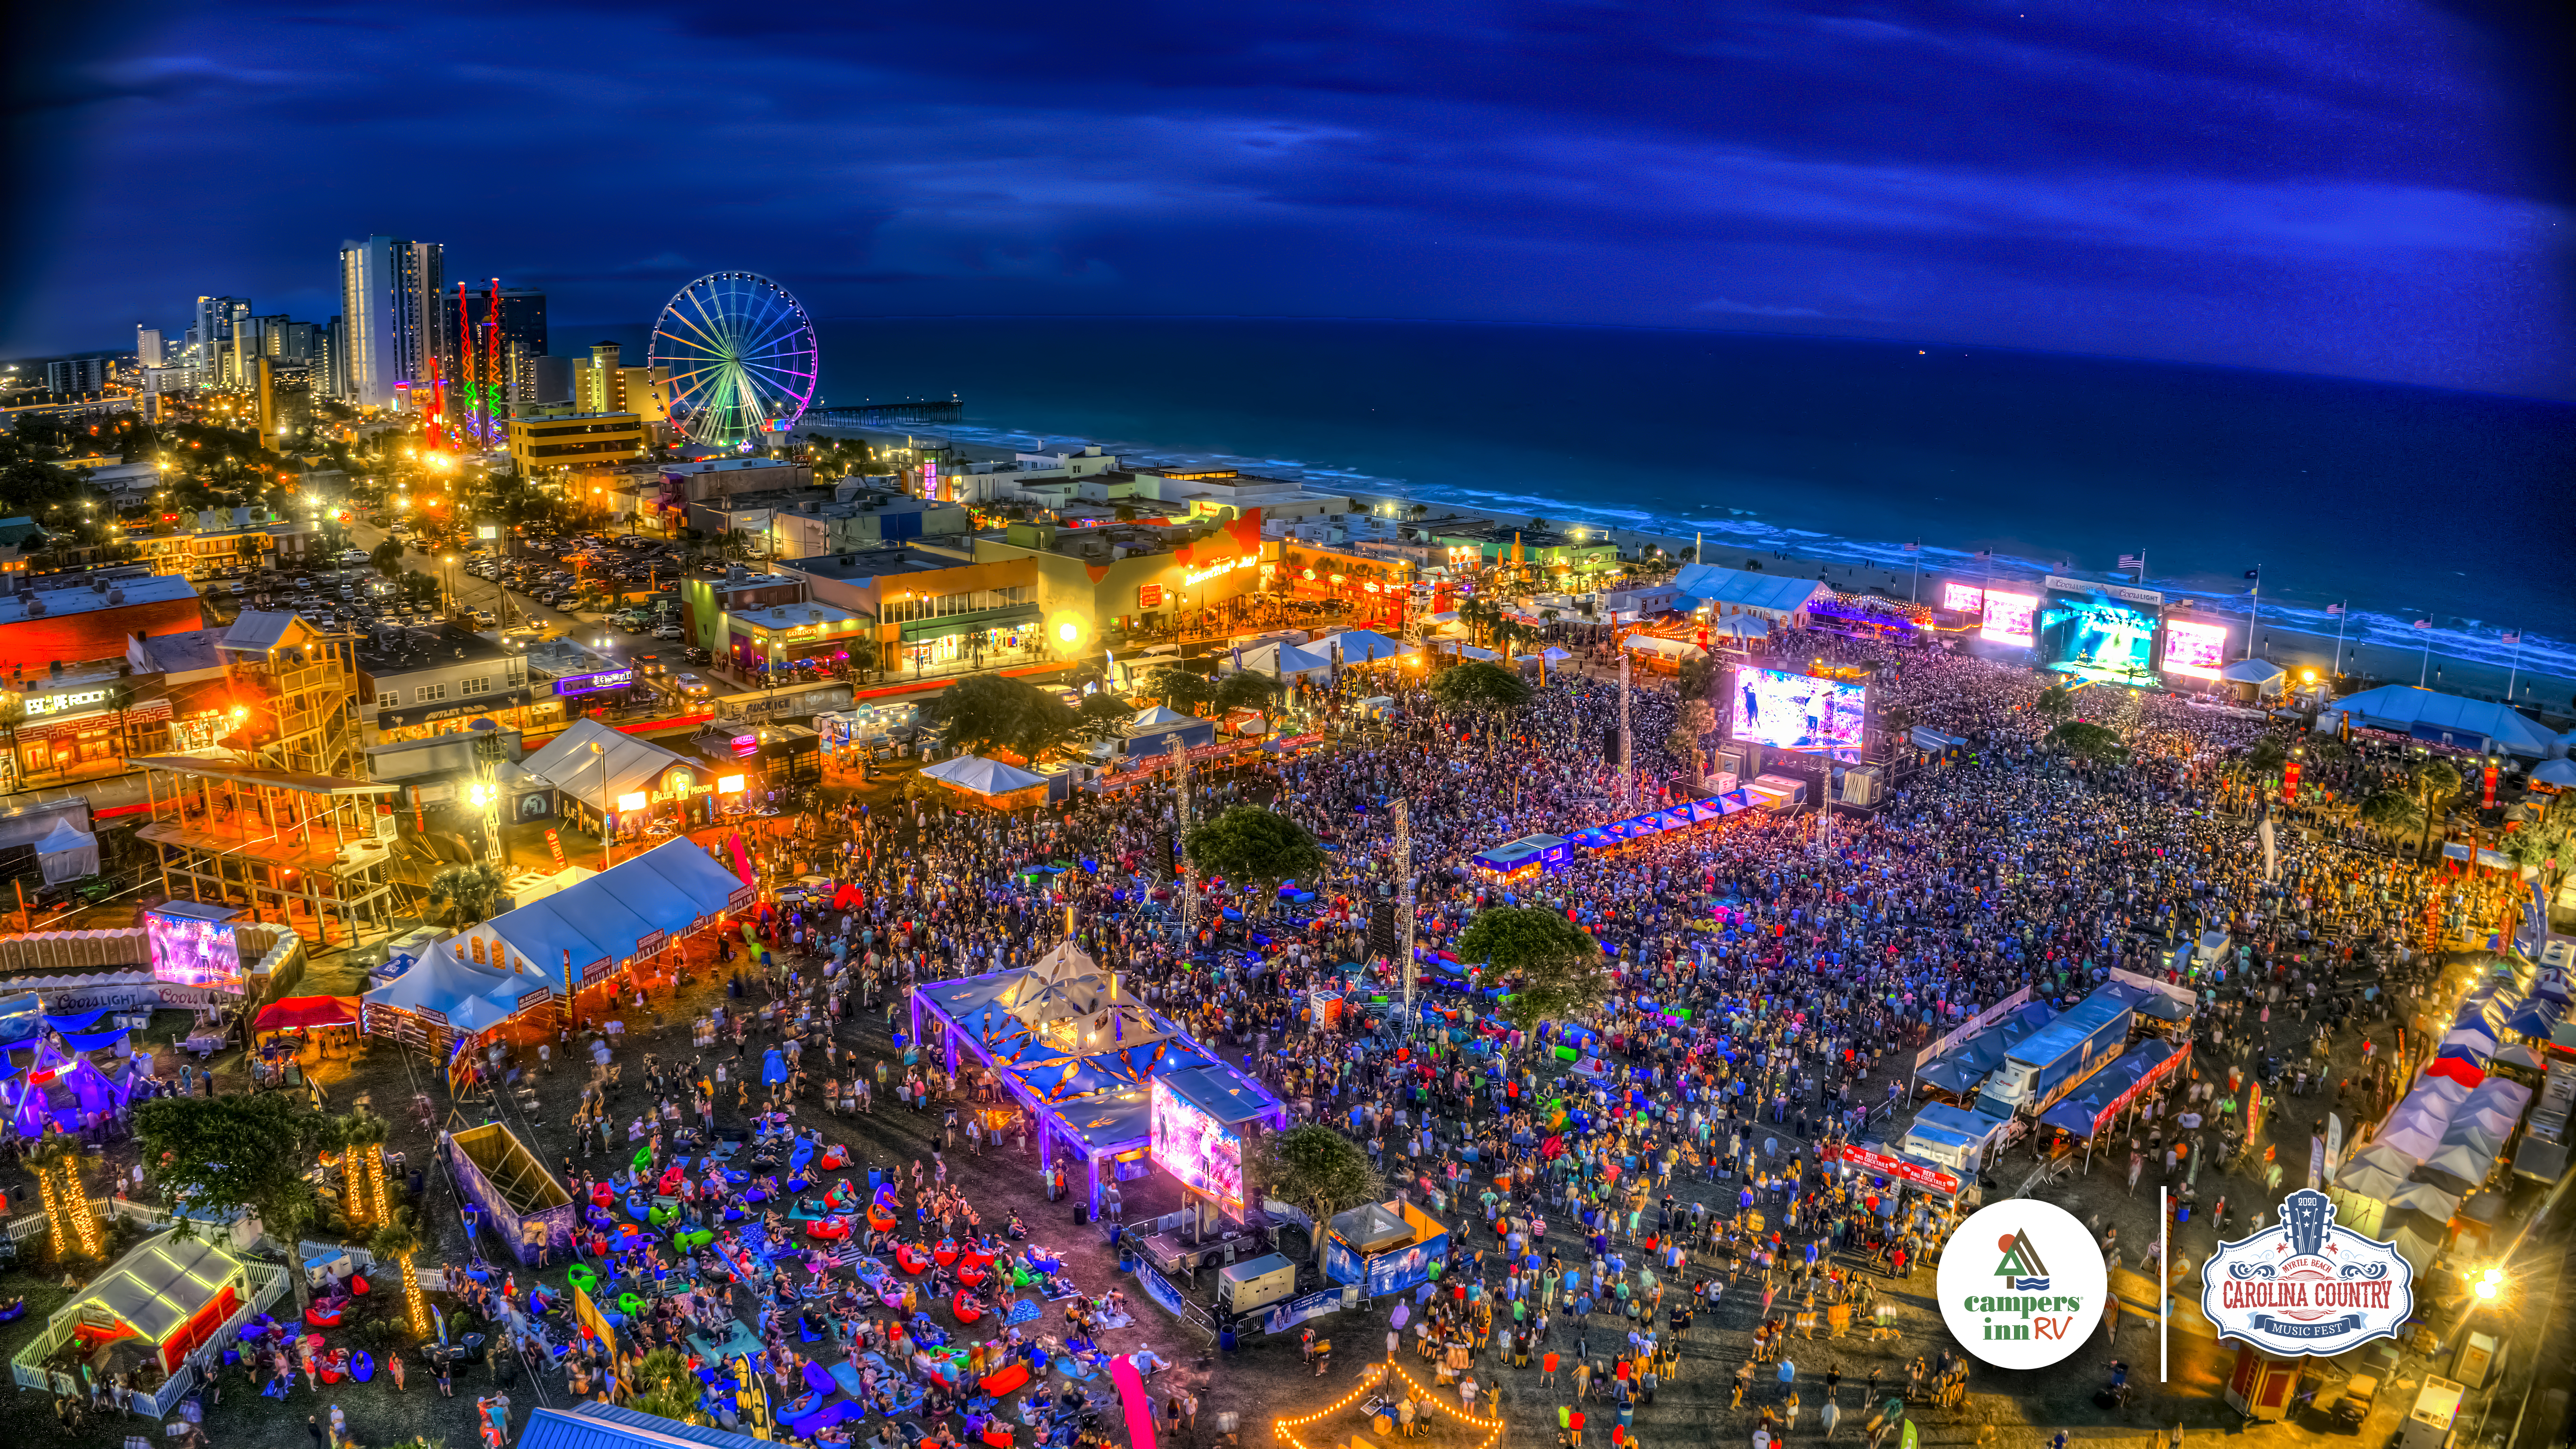 drone shot of 2019 Carolina Country Music Fest in Myrtle Beach, SC.